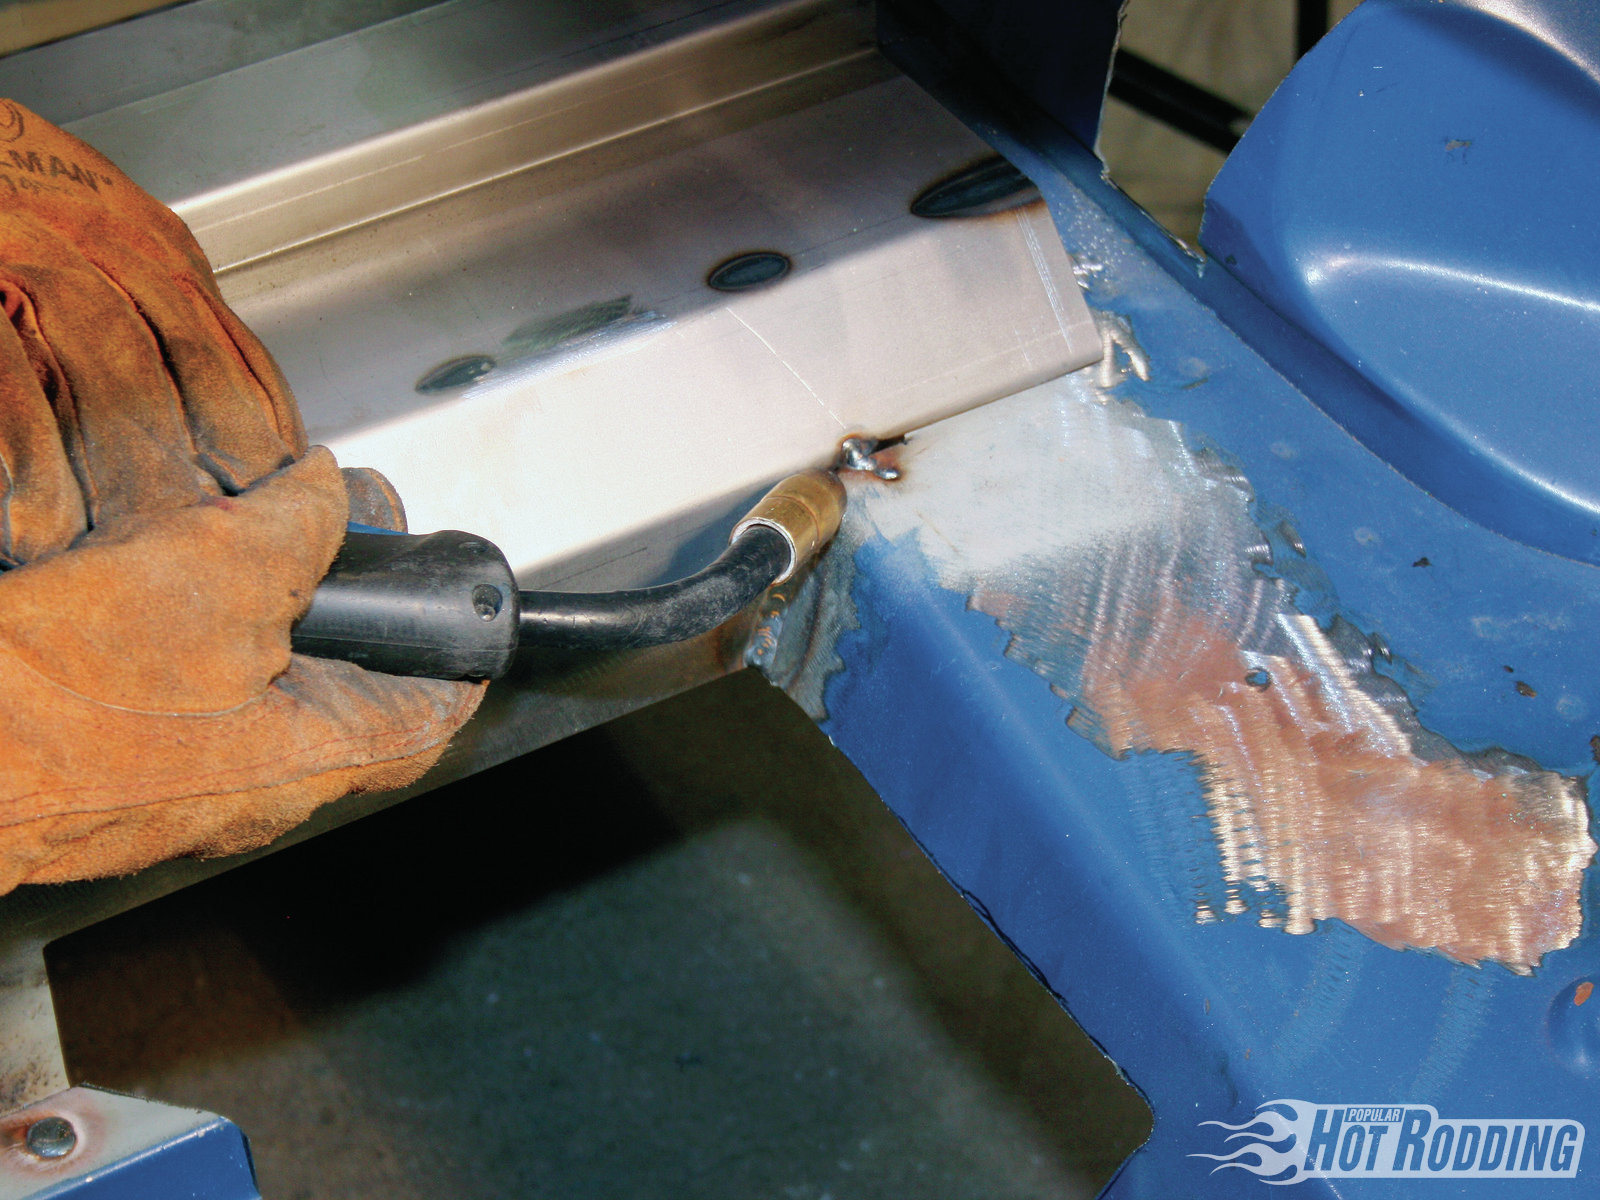 7. With the plug welding complete, seam weld the sides of the new trunk pan to the body. Remember to grind paint off the body to bare metal before welding, and apply a coat of weld-thru primer along the joints to prevent rust.